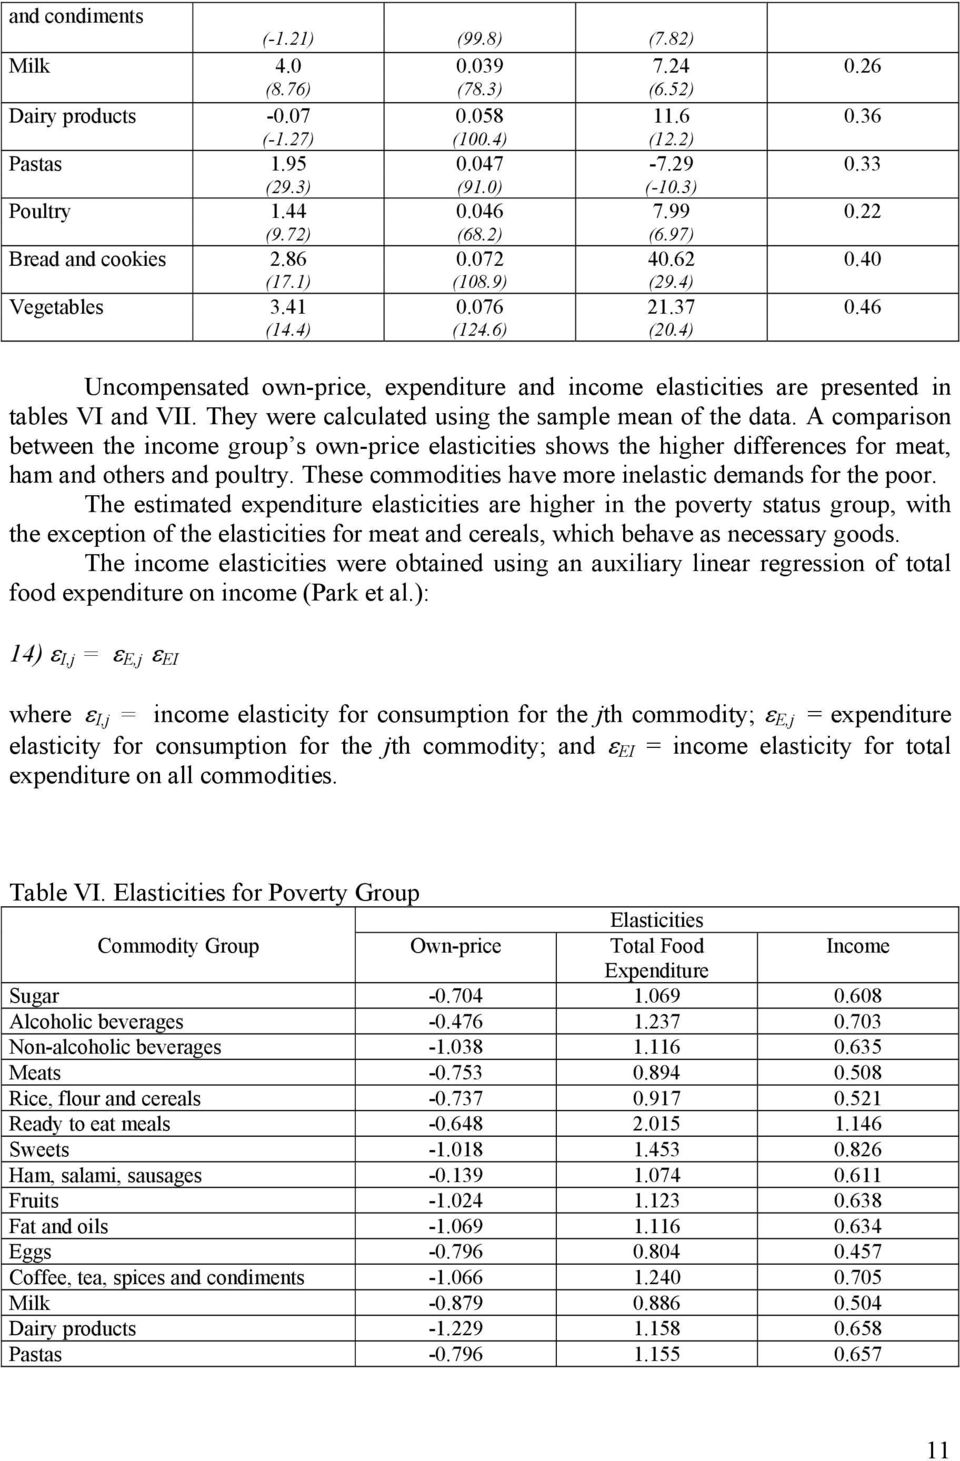 4) Uncompensated own-price, expenditure and income elasticities are presented in tables VI and VII. They were calculated using the sample mean of the data.